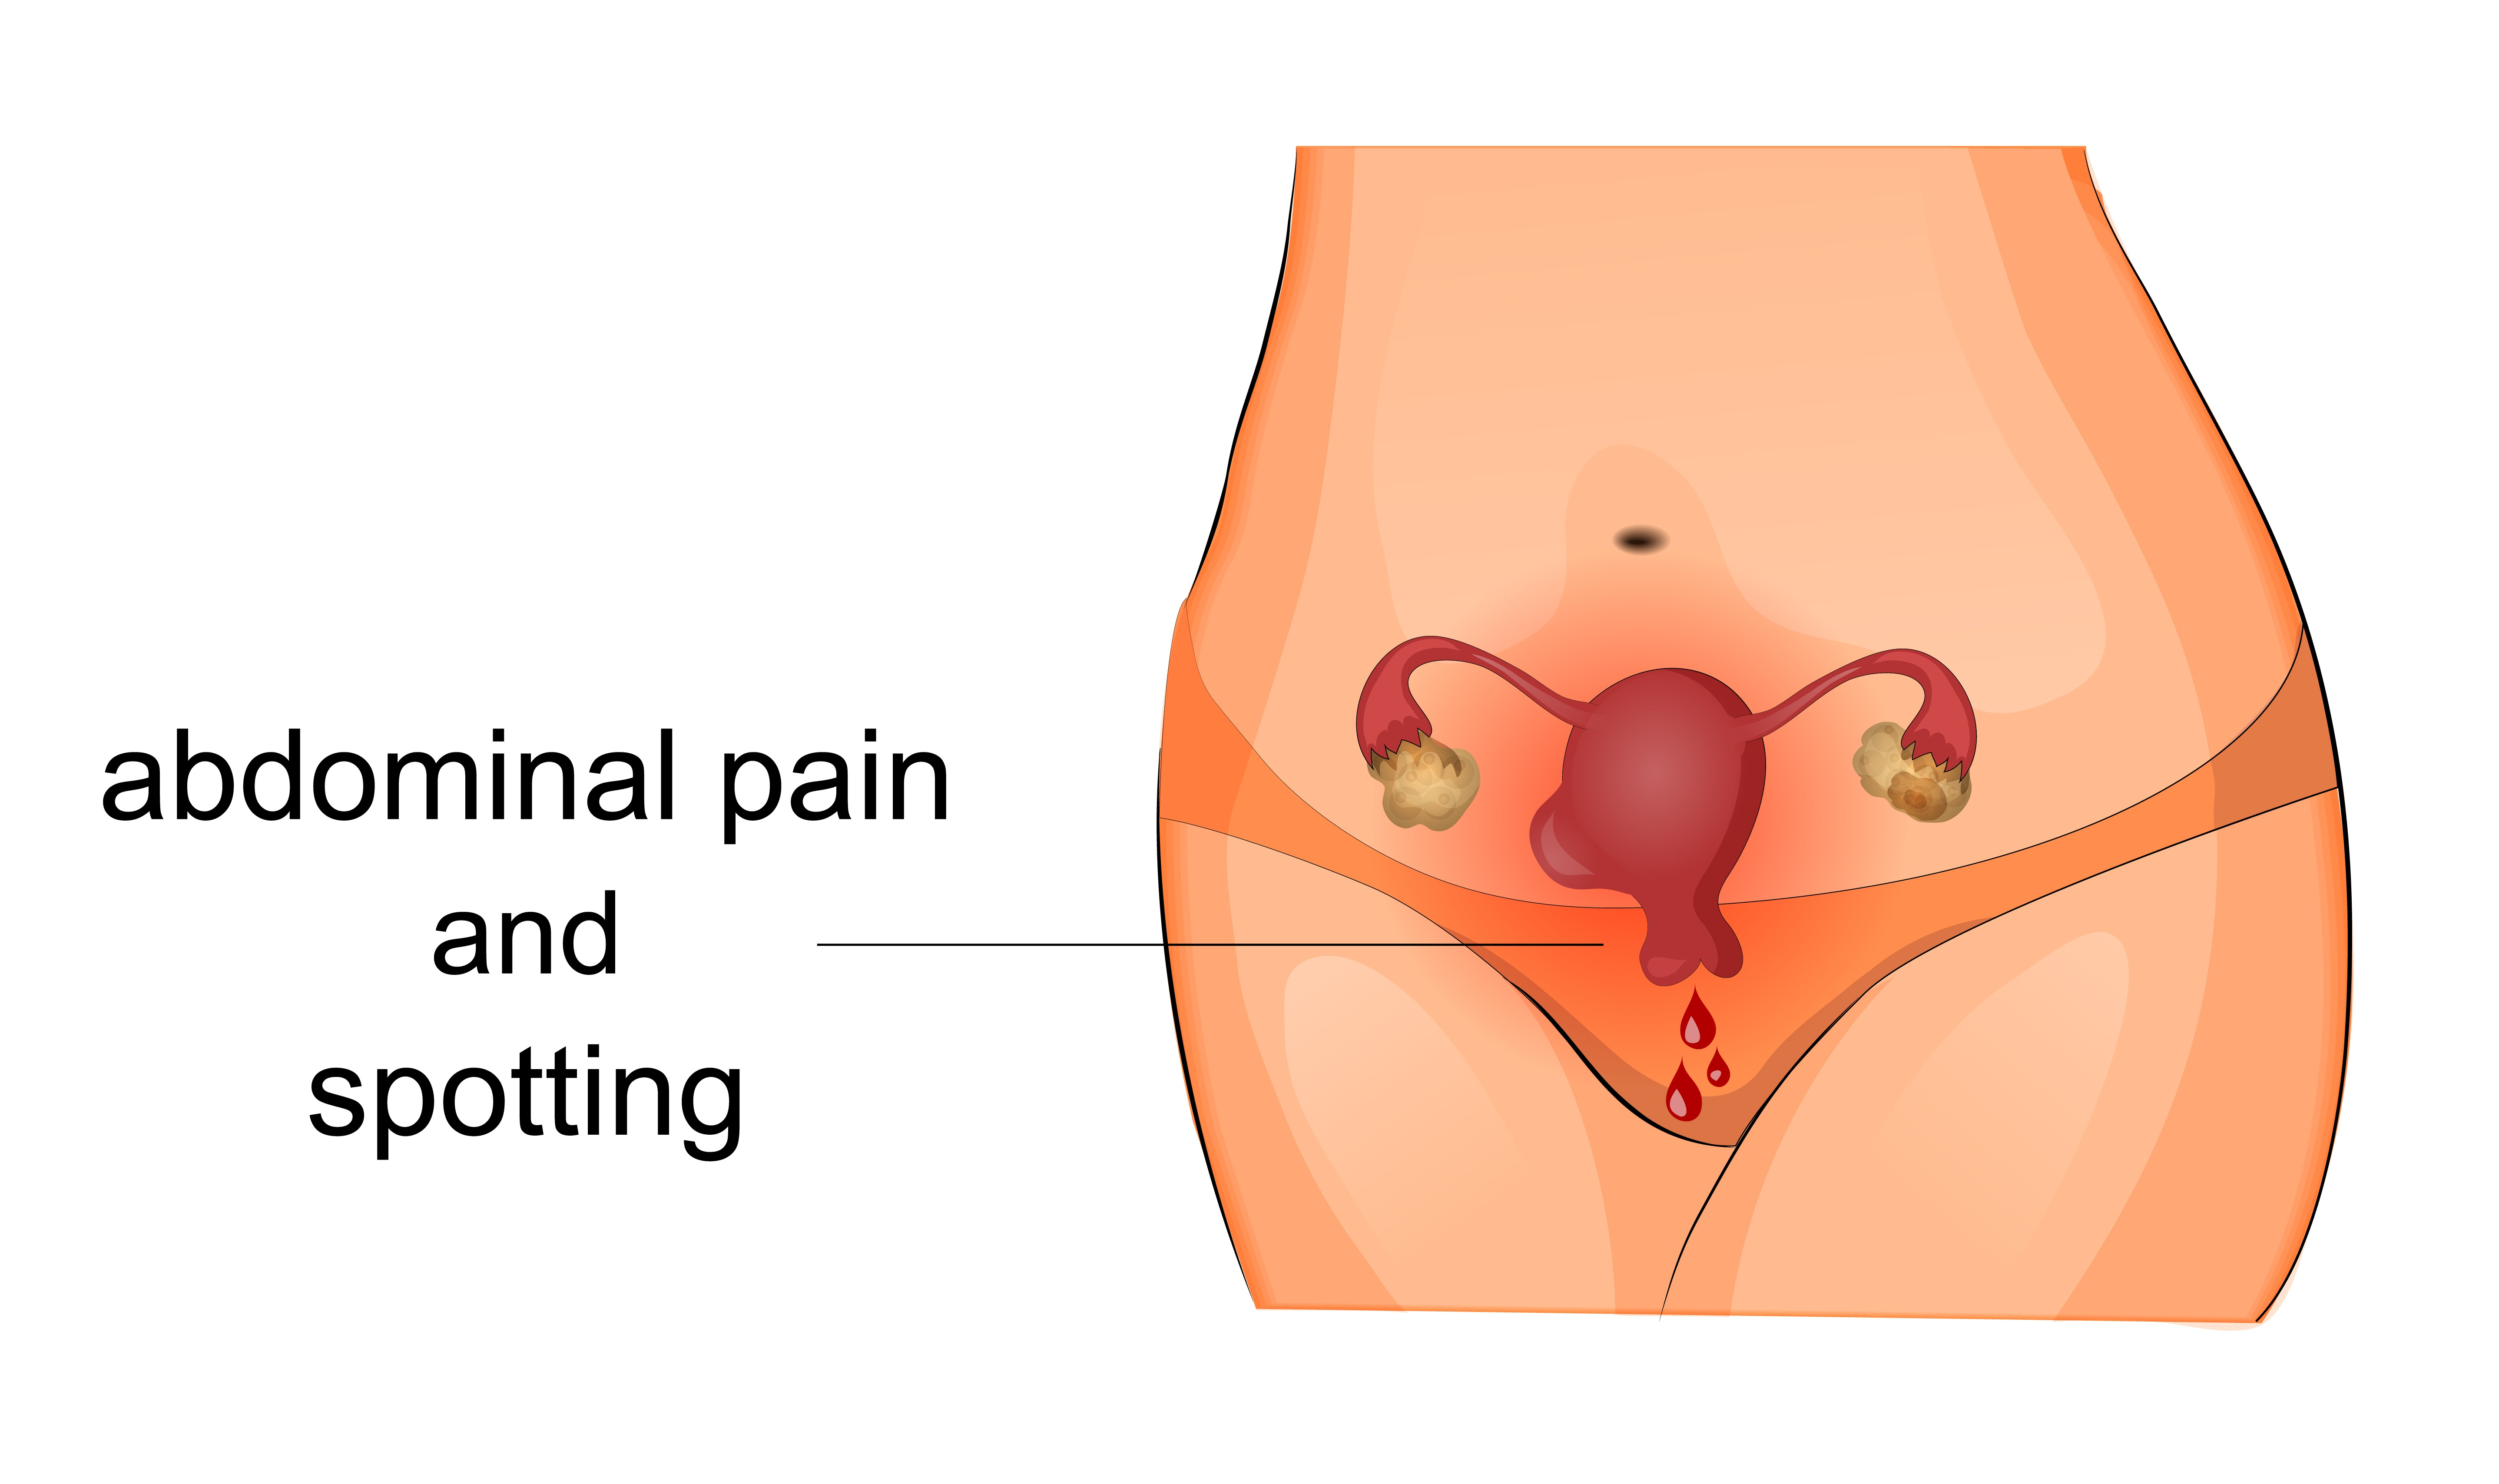 Typical symptoms of uterine fibroids